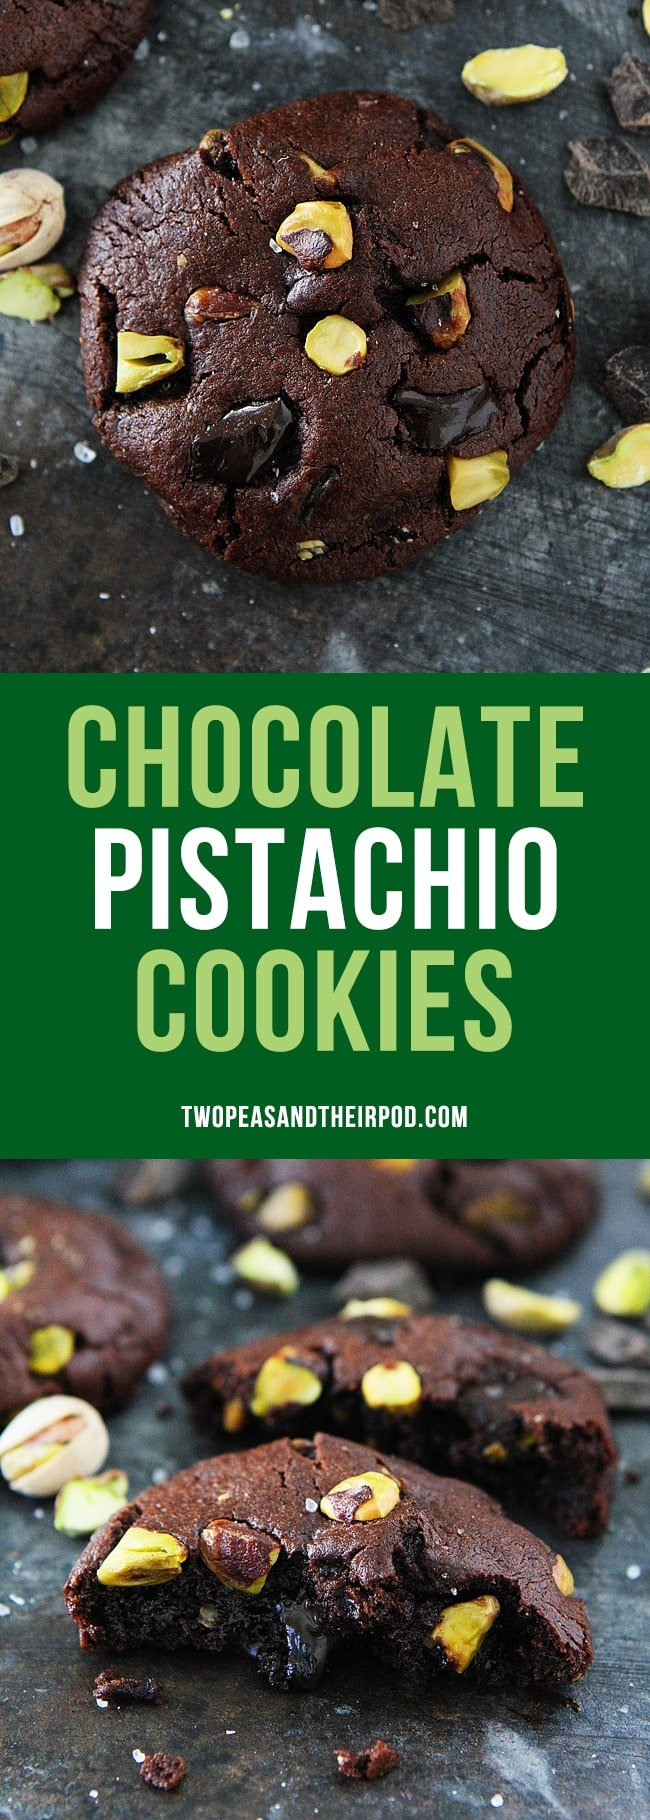 Chocolate Pistachio Cookies-rich chocolate cookies with pistachios, chocolate chunks, and sea salt! #cookies #chocolate #pistachio #Christmascookie